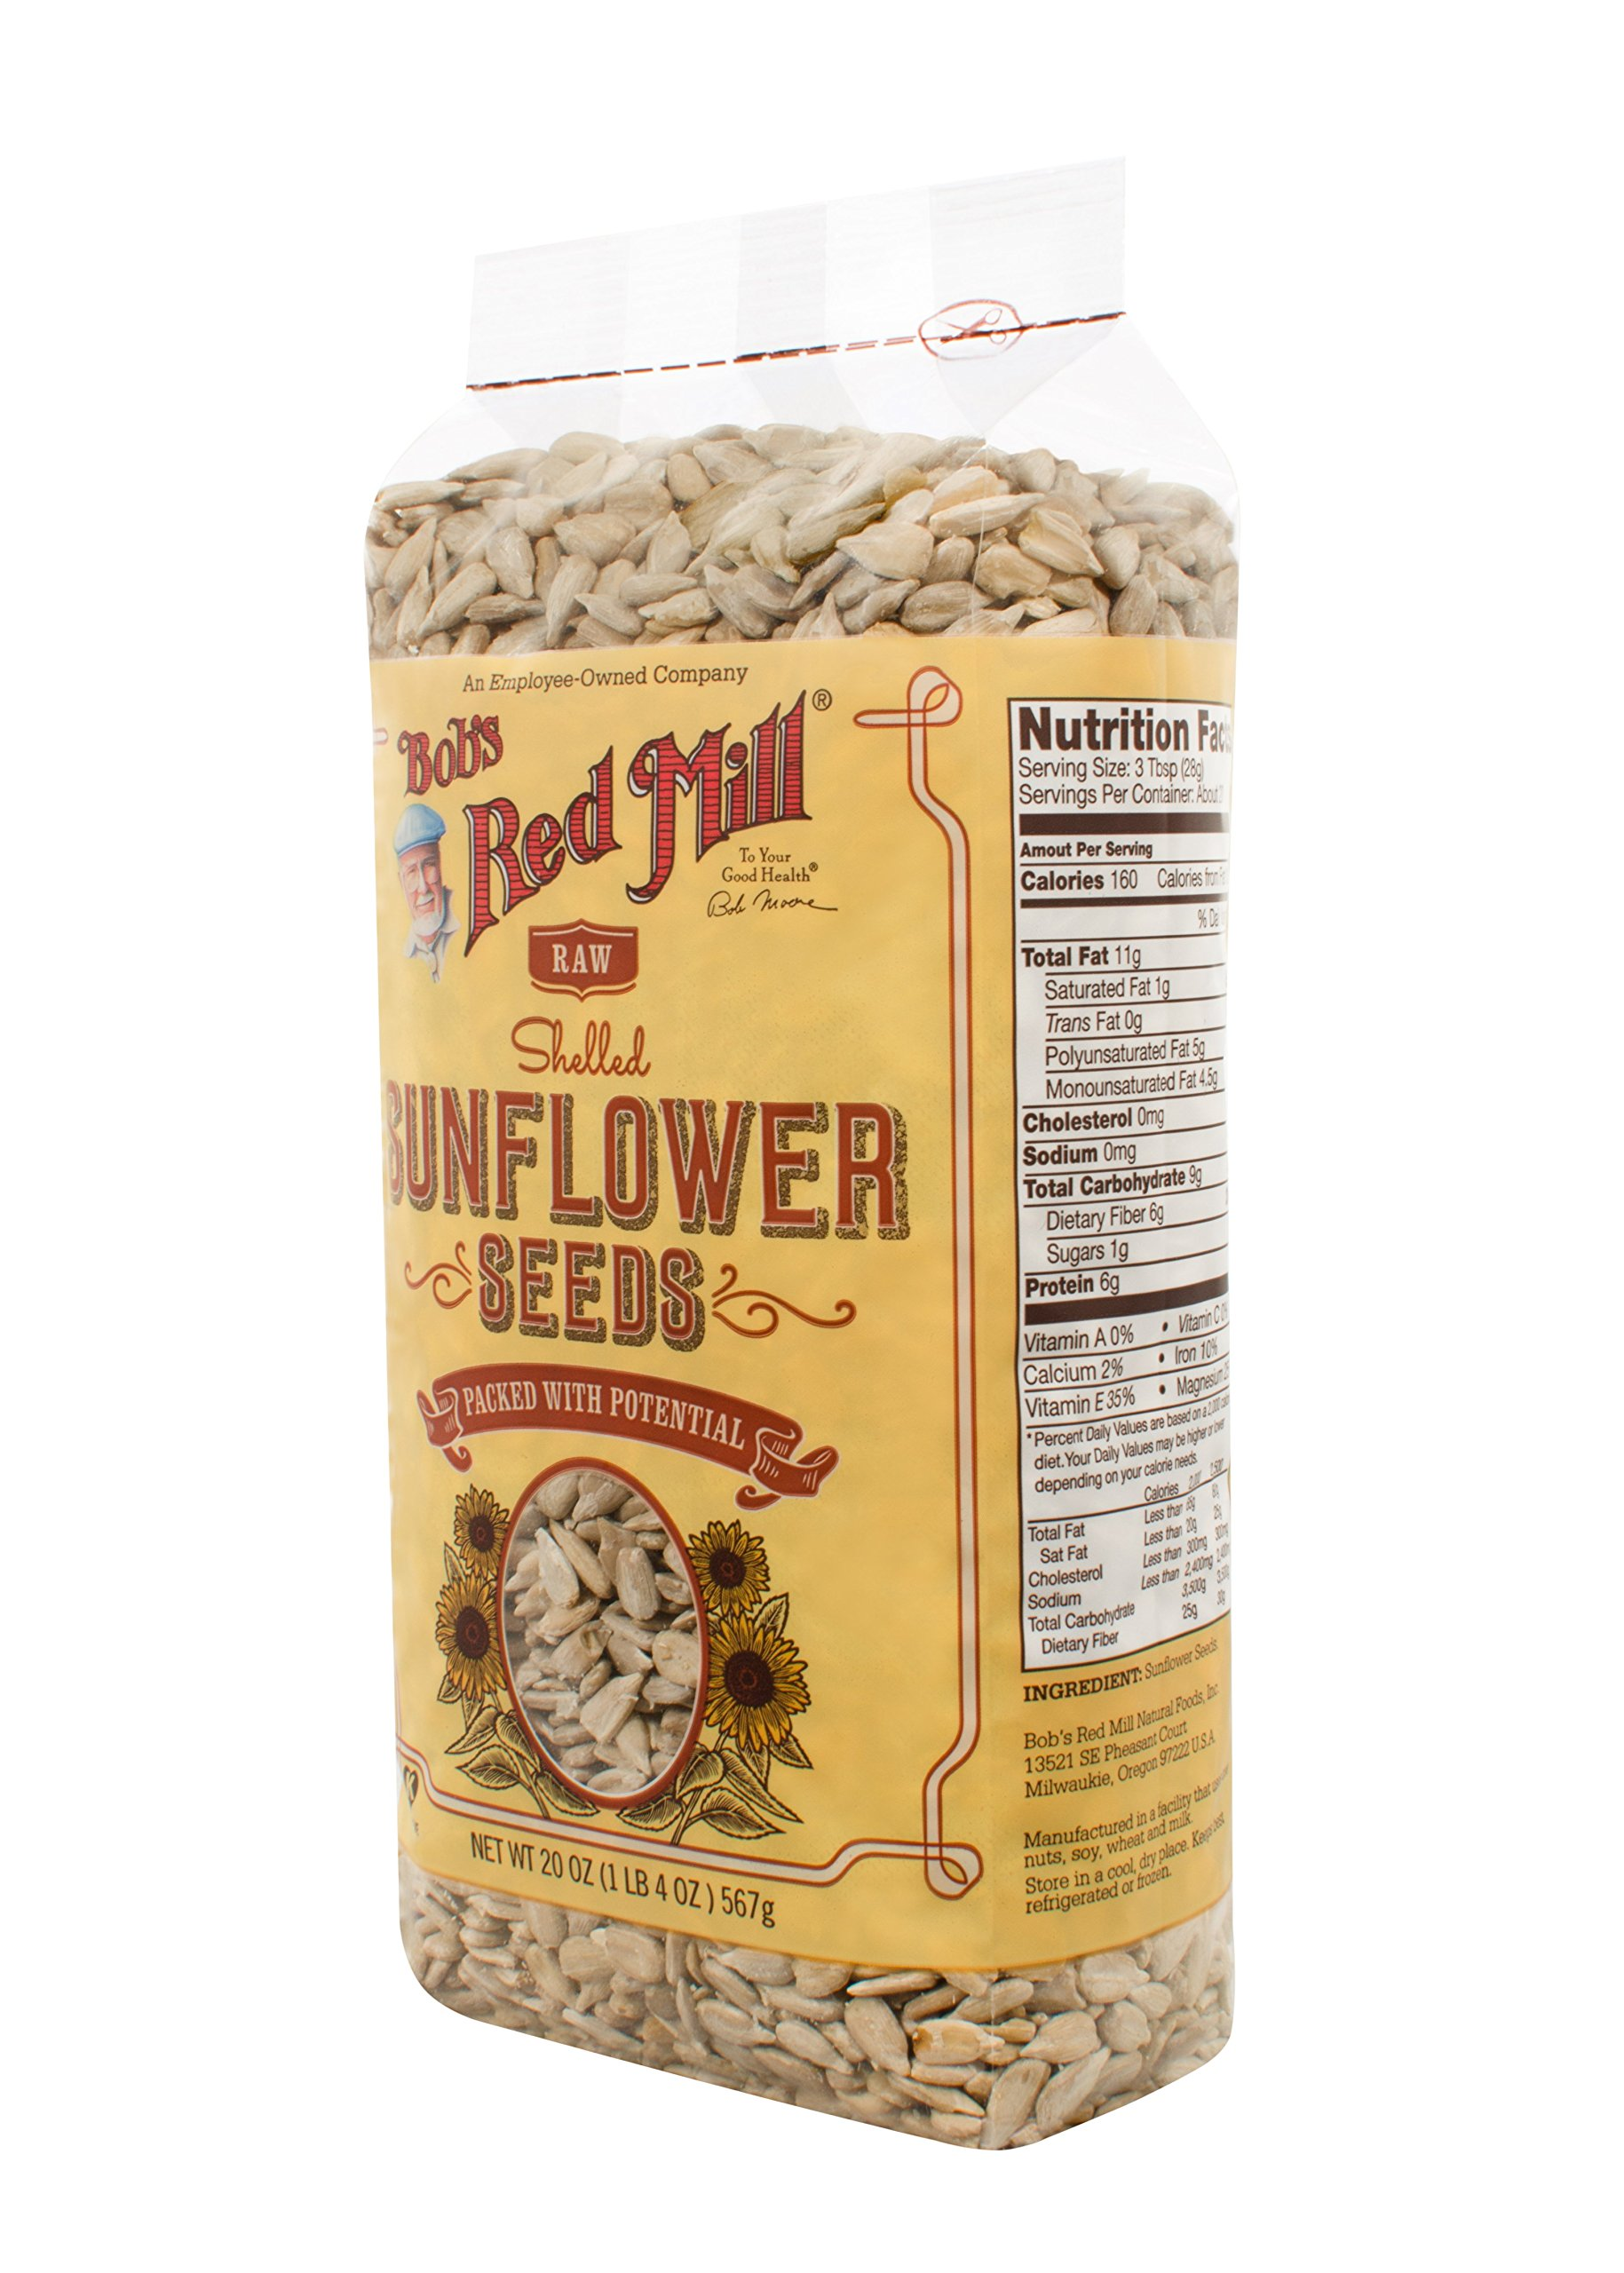 Bob's Red Mill Raw Shelled Sunflower Seeds (Kernels Only), 20-ounce (Package May Vary)